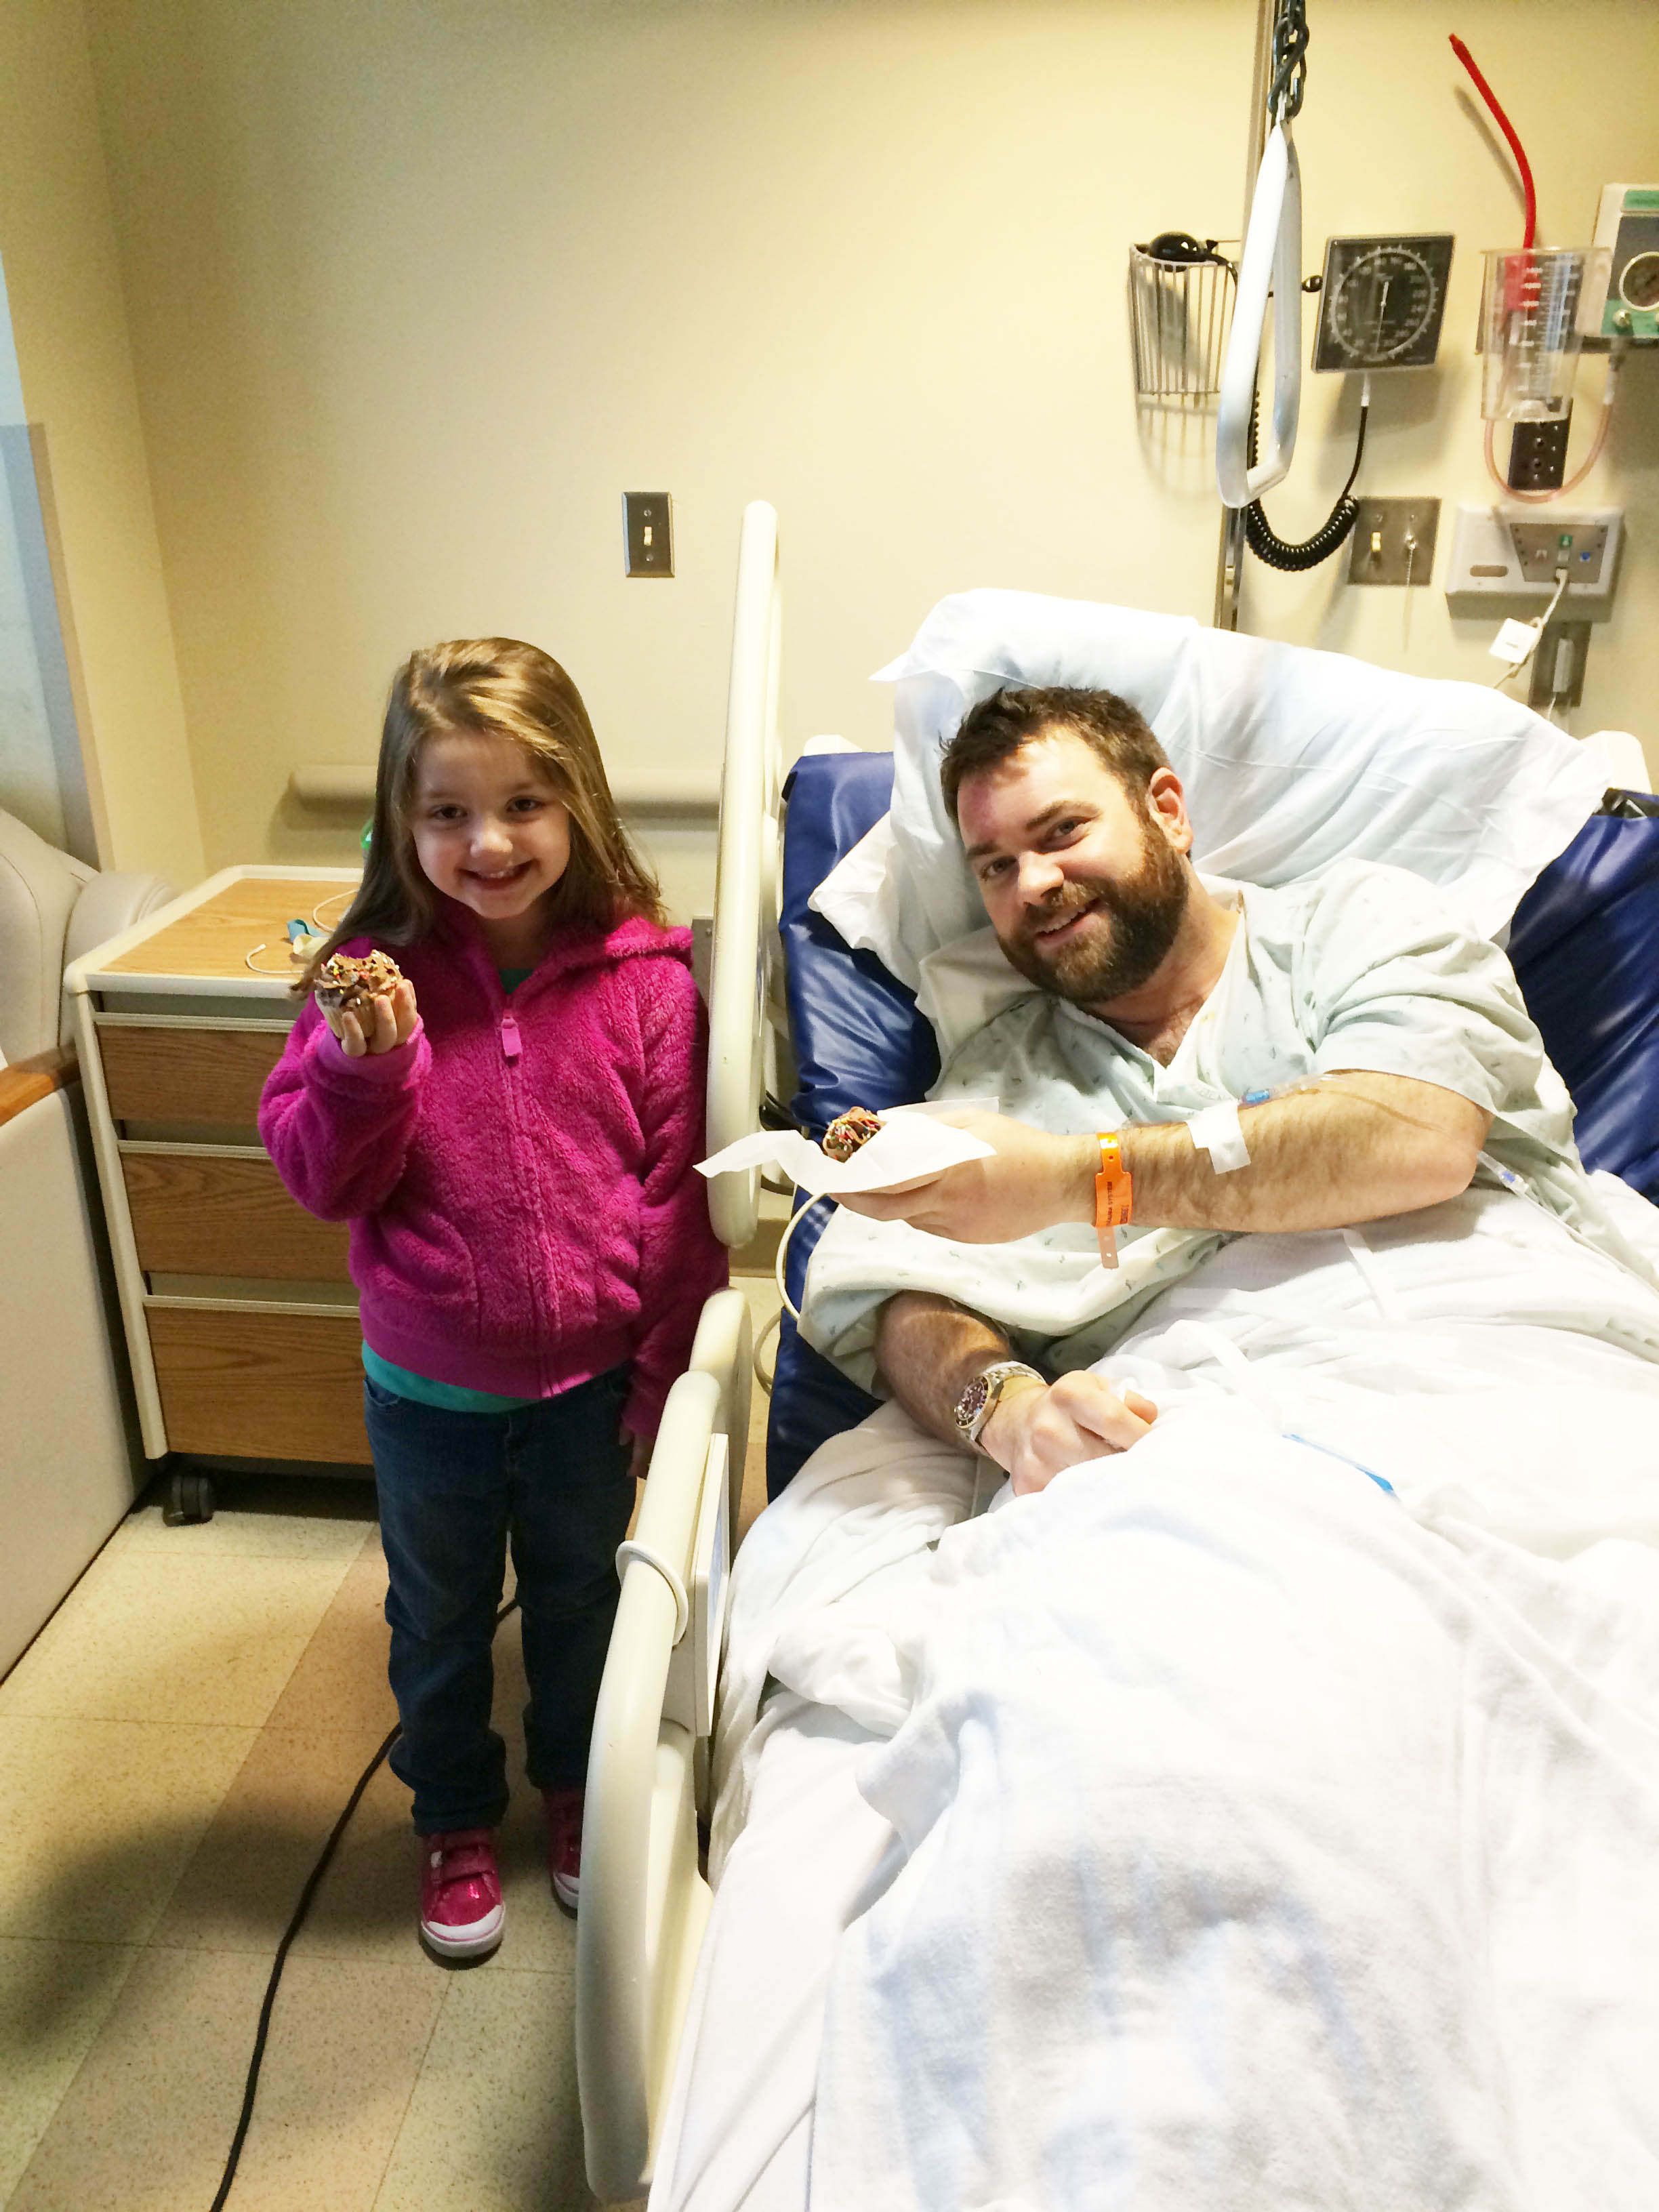 The day after his accident, April 5, 2015, Todd and his niece Ava celebrated her fifth birthday being together and eating cupcakes.